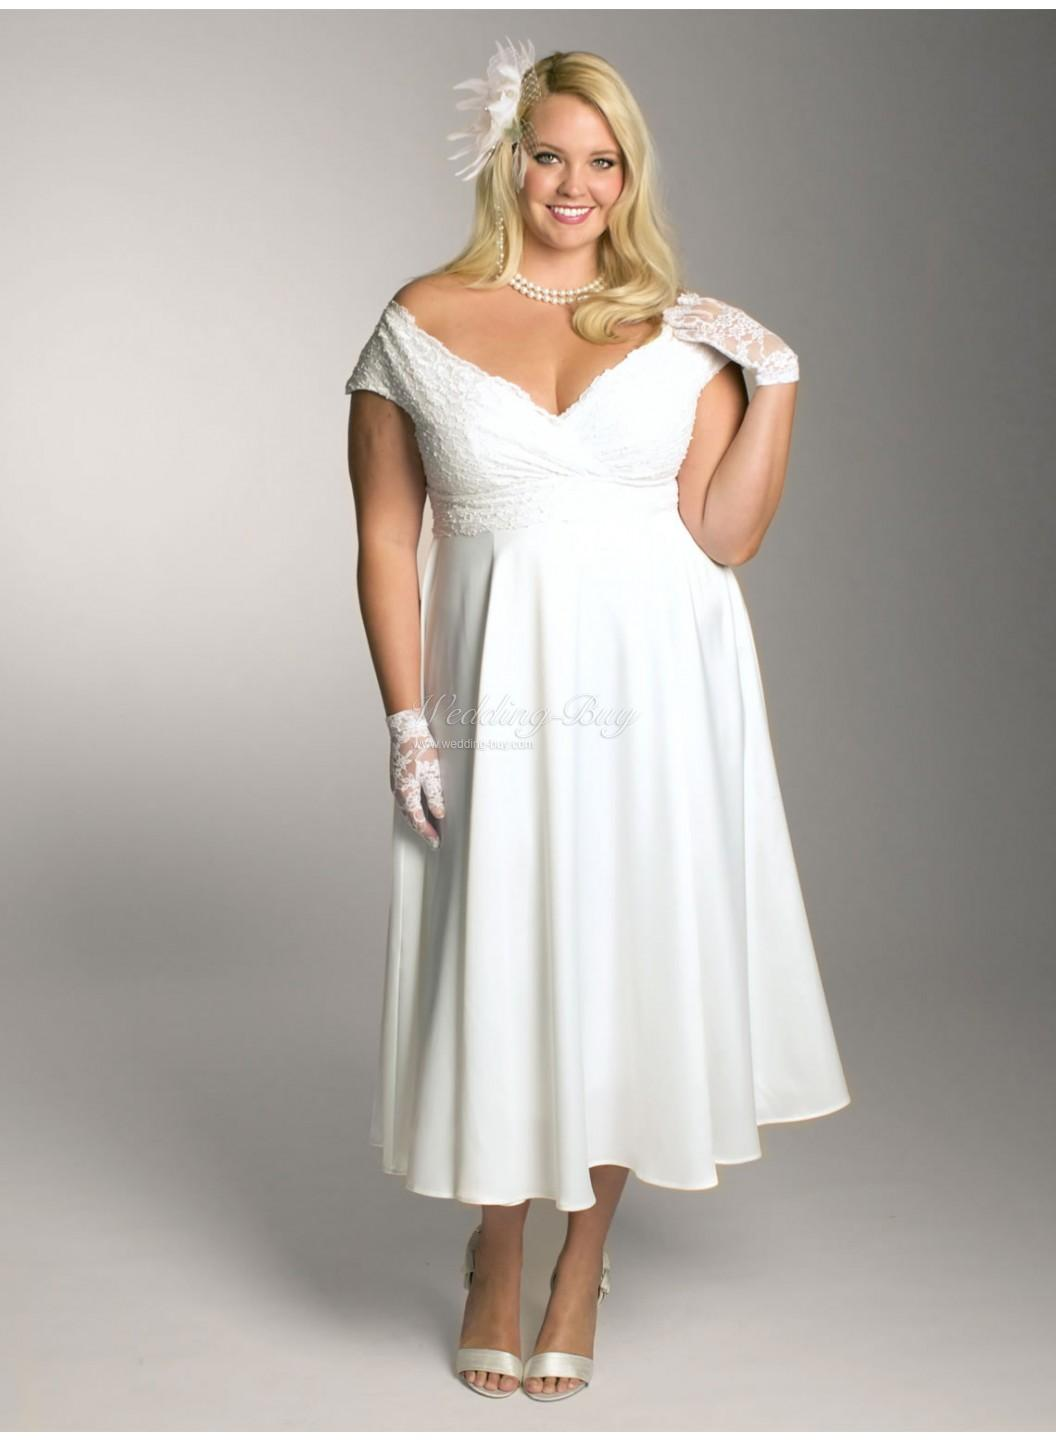 Formal Dresses for Weddings Plus Sizes, Formal Dresses for Plus Size Women, Wedding Dresses for Plus Size Women, 2015 Plus Size Trends, Plus Size Fall Wedding Dresses, Plus Size Dresses for Weddings, Bridesmaid Dresses Plus Size, Bridesmaid Dresses 2015